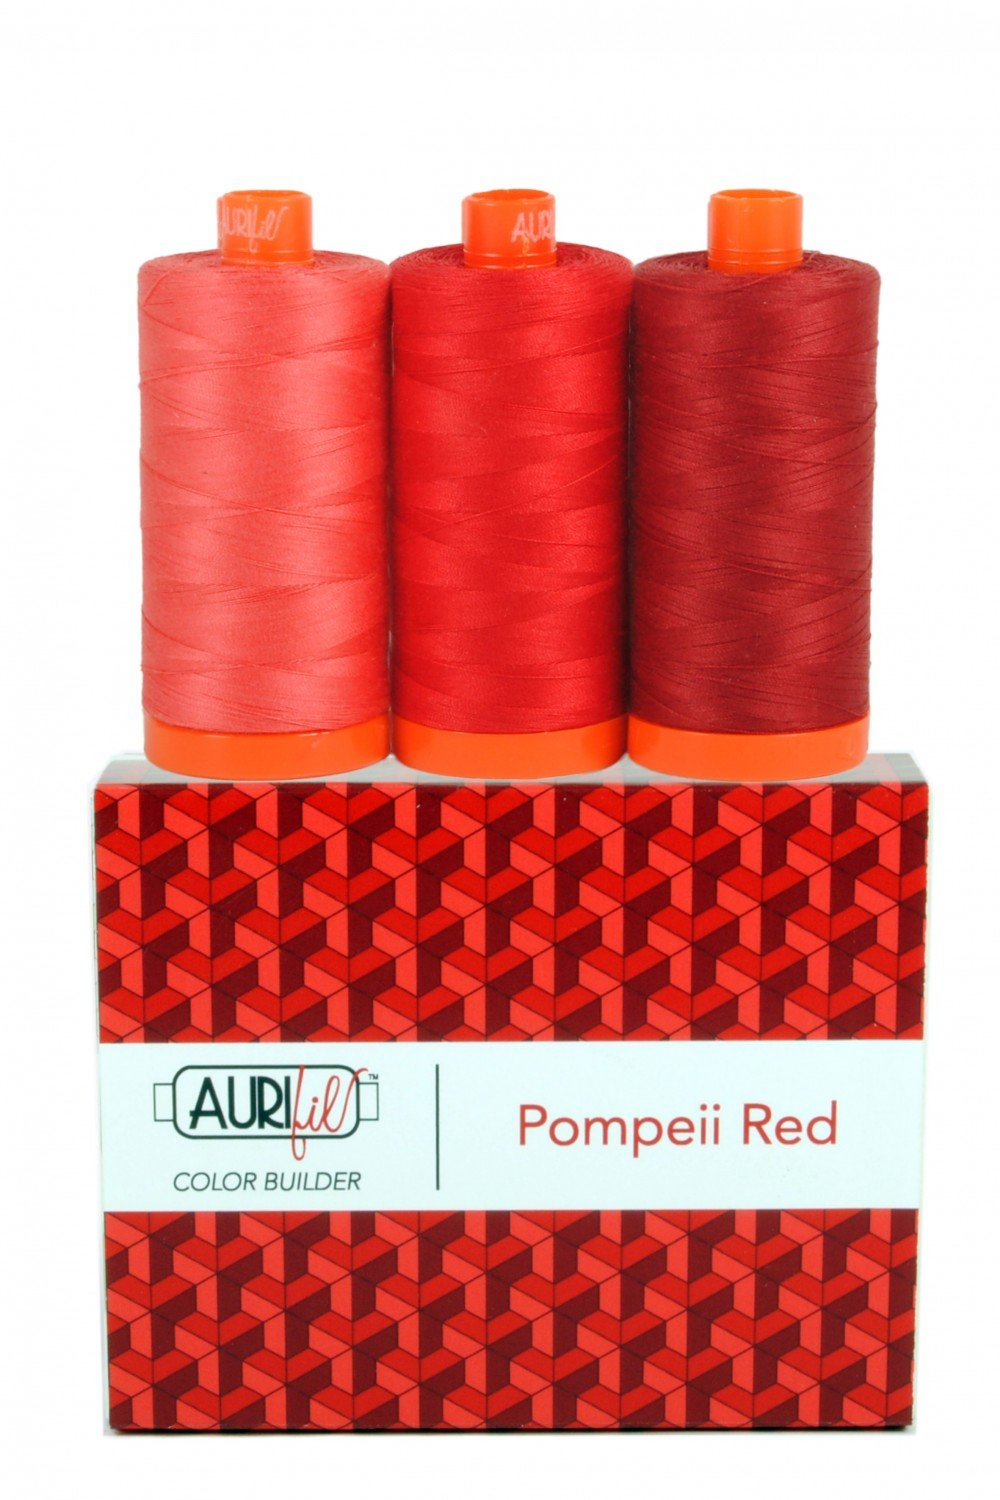 Aurifil Color Builder 3pc Set - Pompeii Red